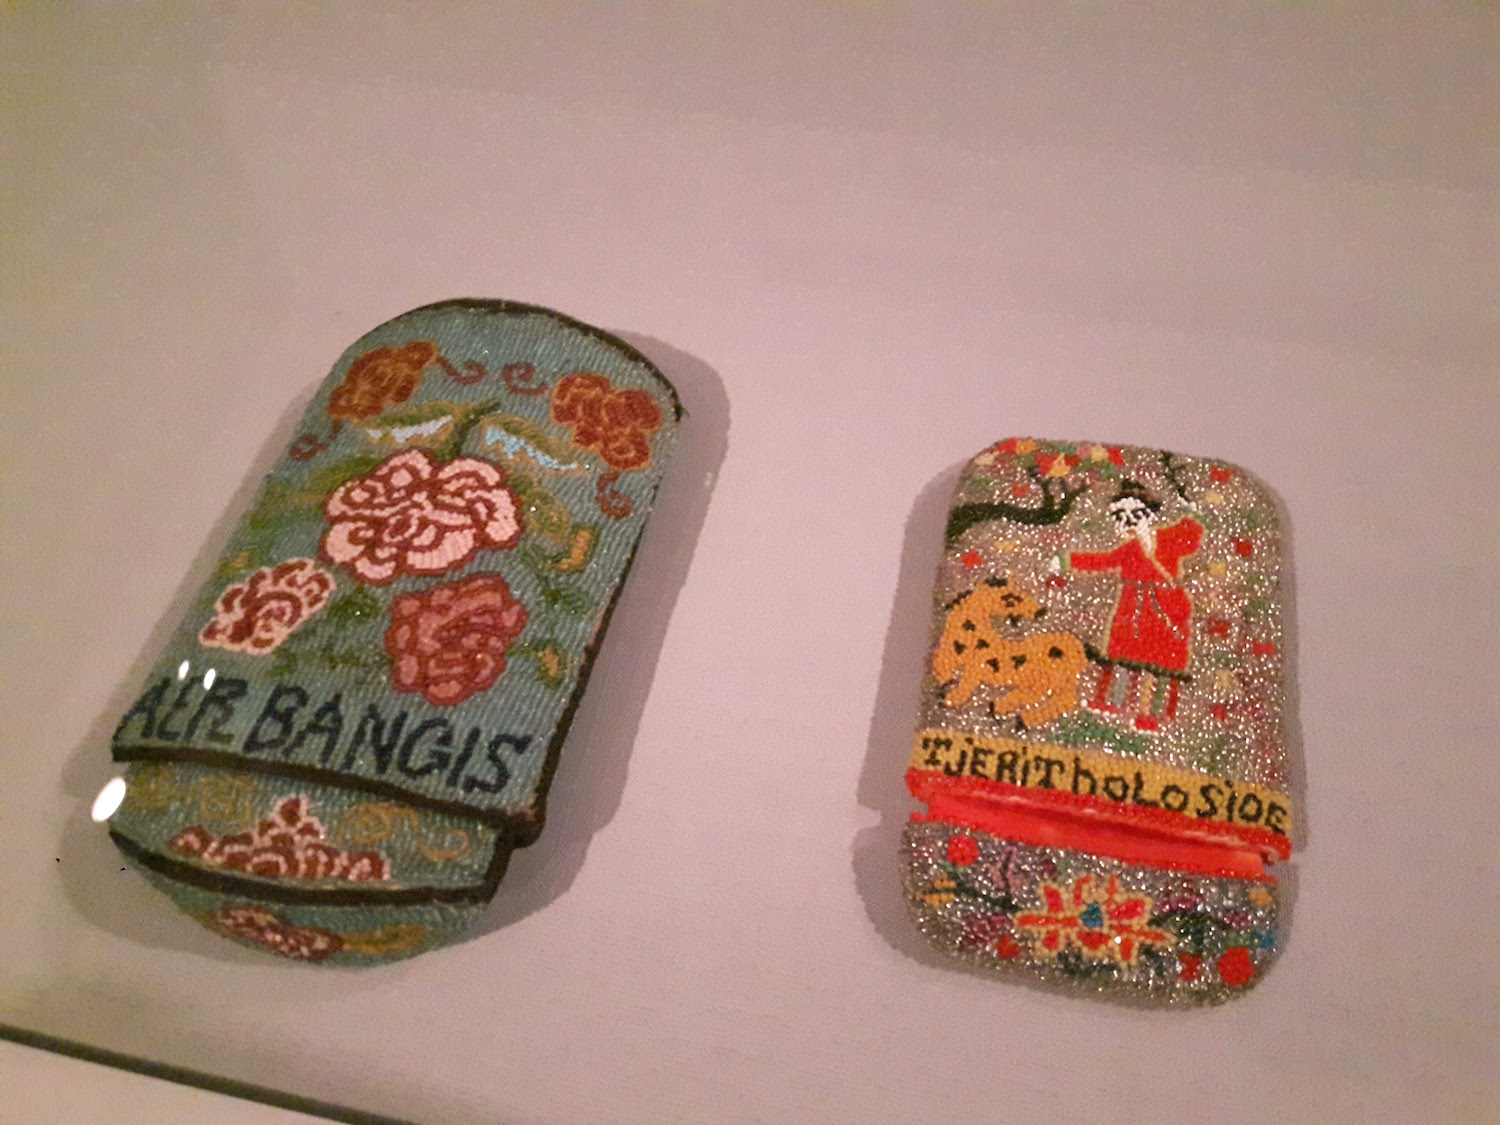 From a past exhibition at the Peranakan Museum Singapore.